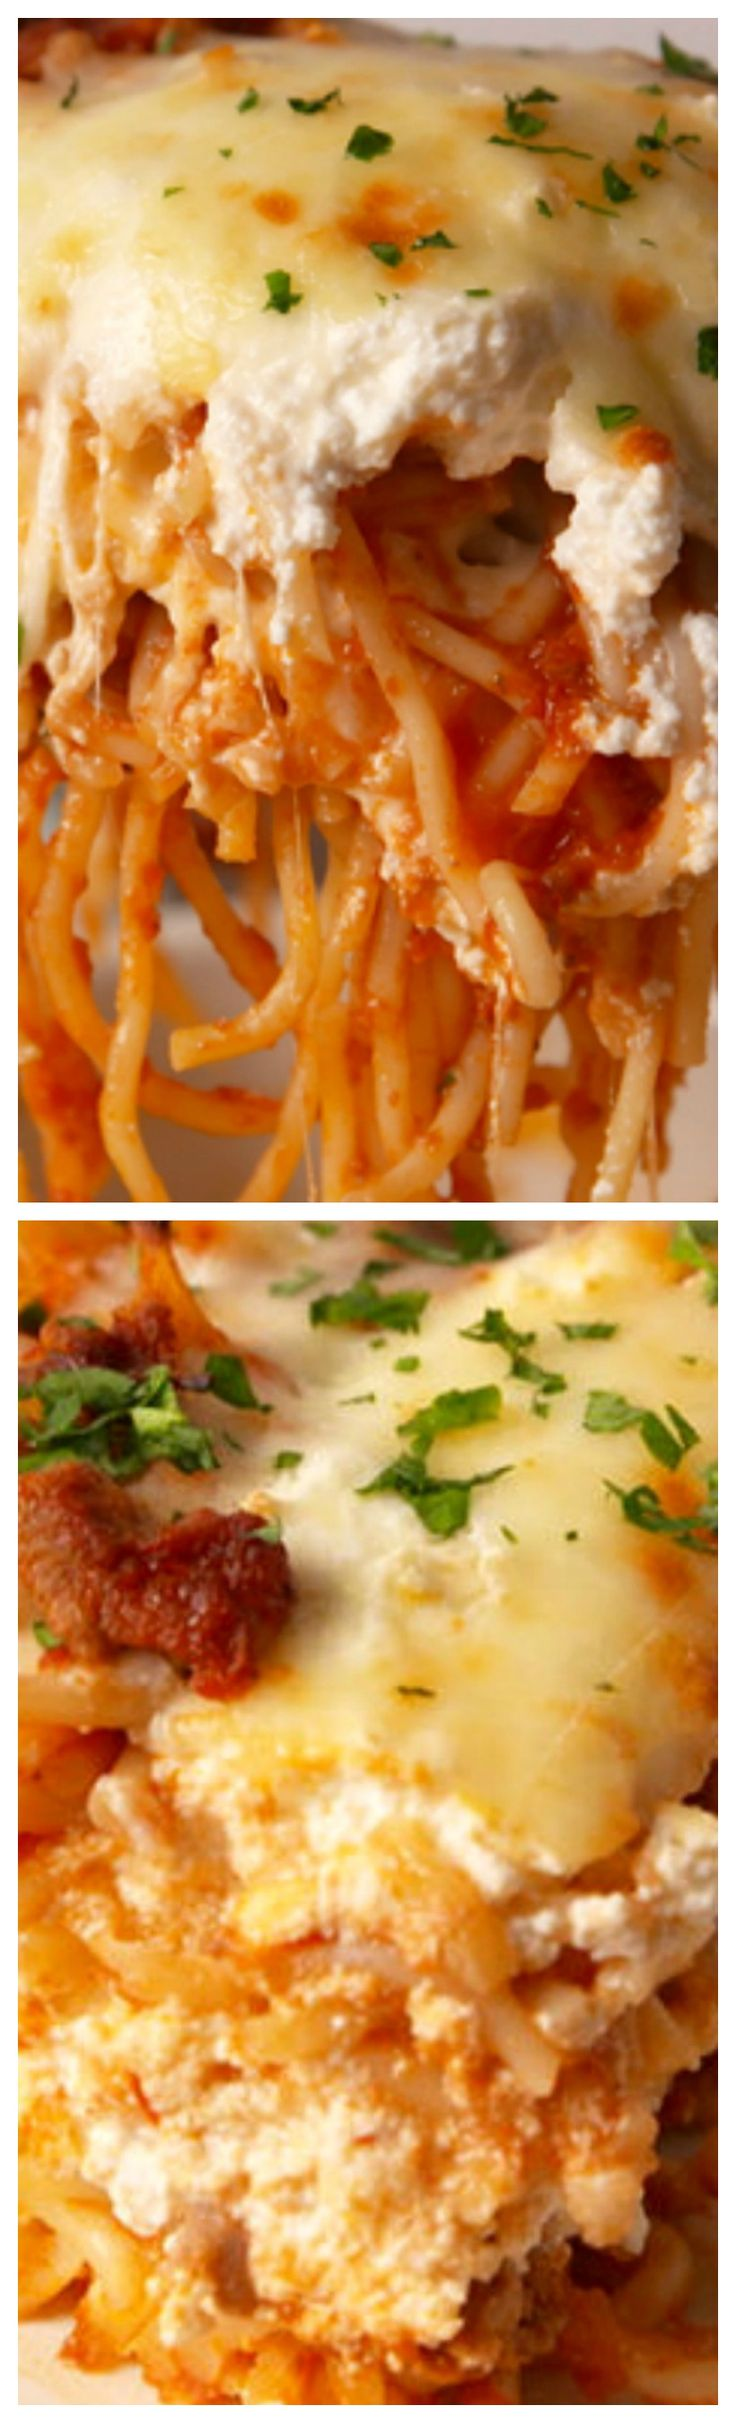 Spaghetti Lasagna ~ Delicious and so much easier to make than regular lasagna